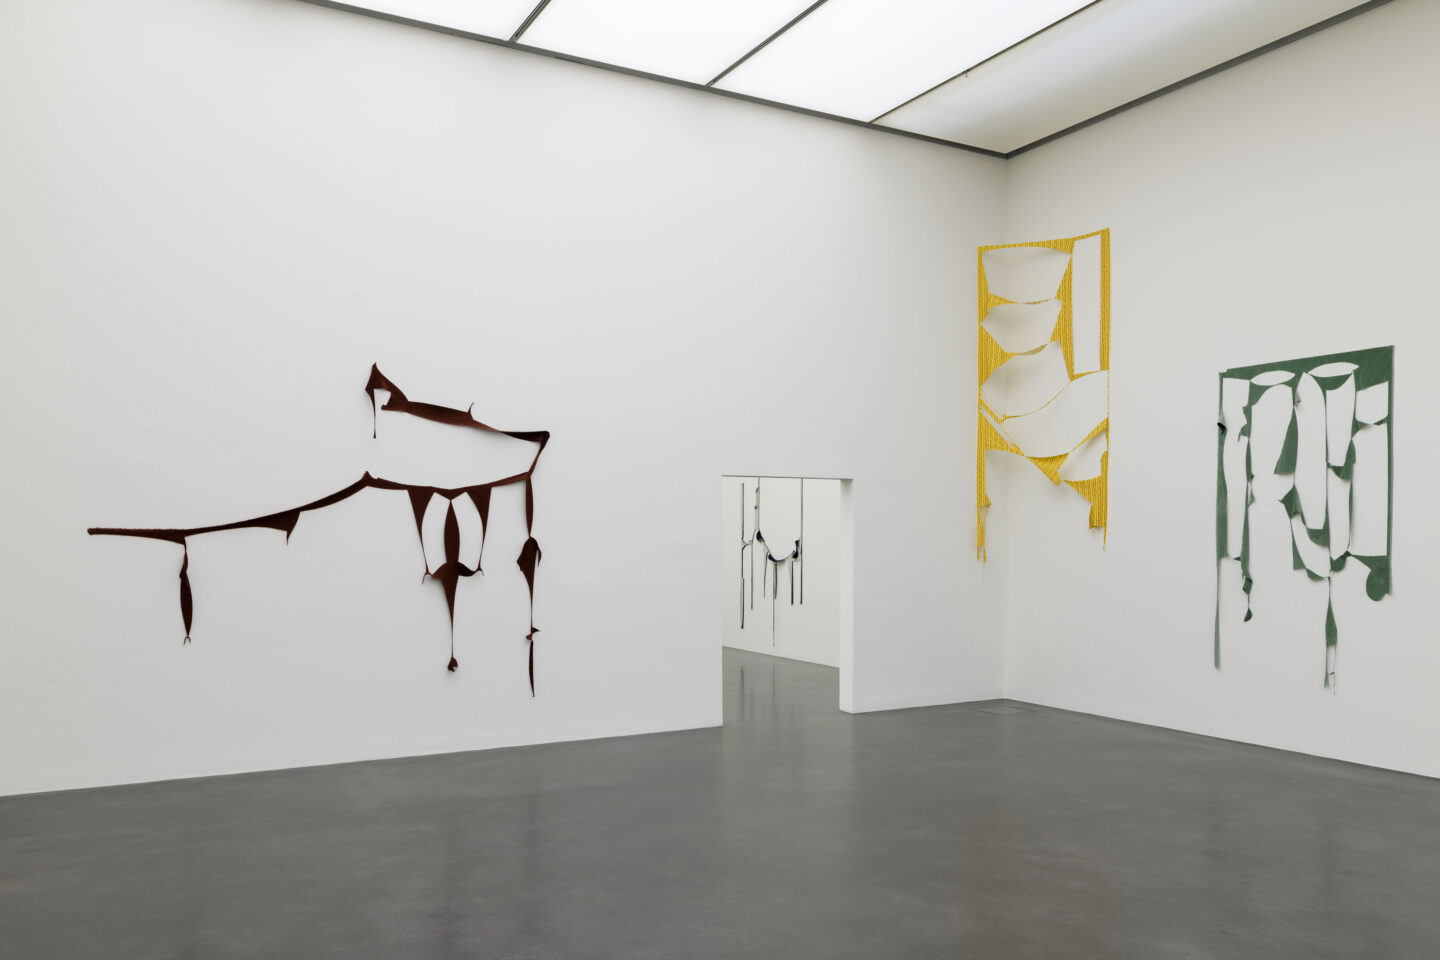 Exhibition View Marion Baruch Soloshow «Retrospektive – innenausseninnen» at Kunstmuseum Luzern, Lucerne, 2020 / Photo: Marc Latzel / Courtesy: the artist and Kunstmuseum Luzern